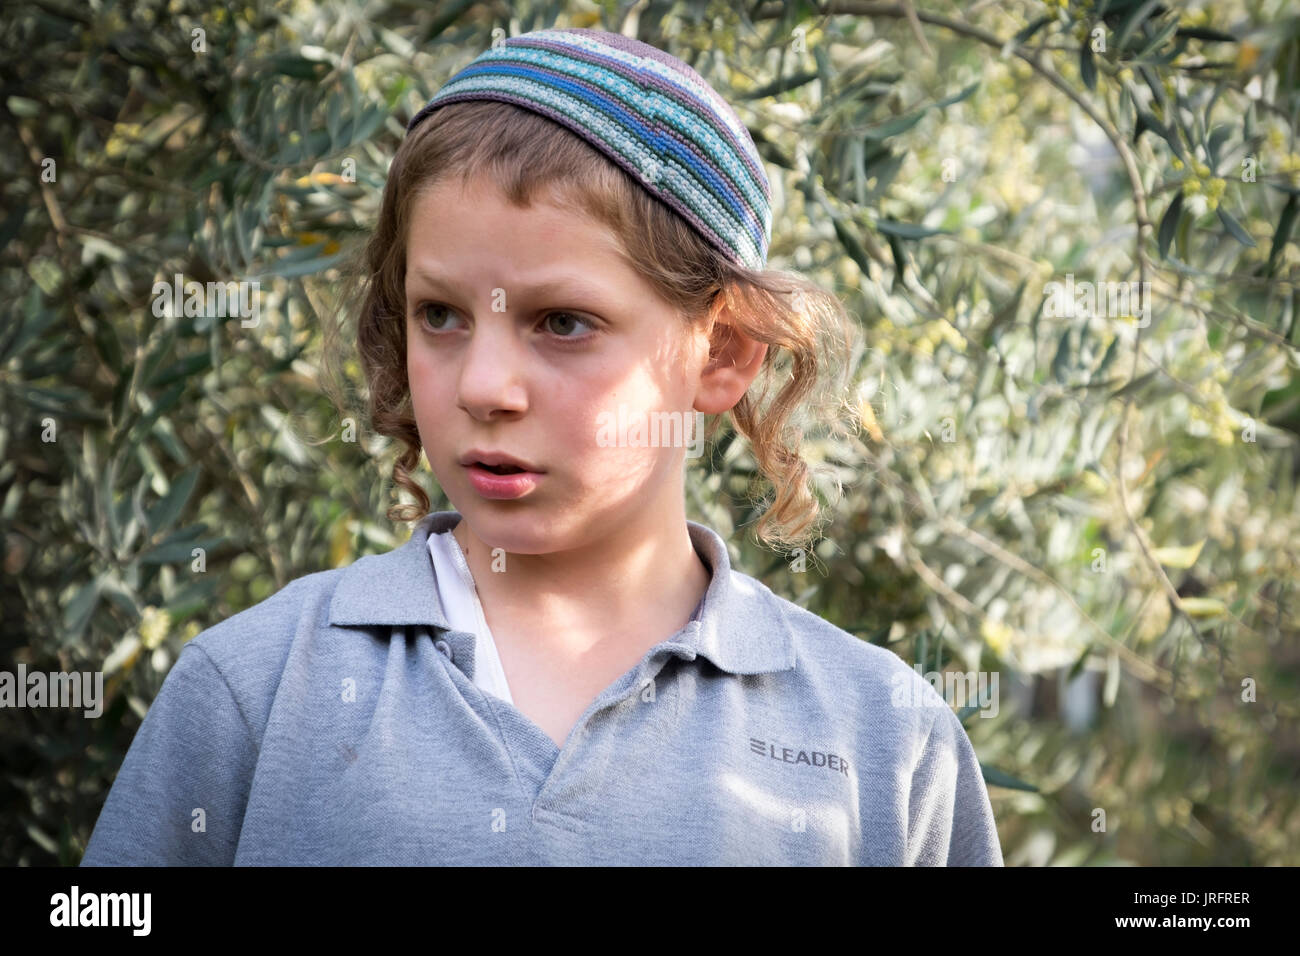 Young Israeli settler child in Hebron, Palestine observes an altercation between settlers and Palestinians - Stock Image